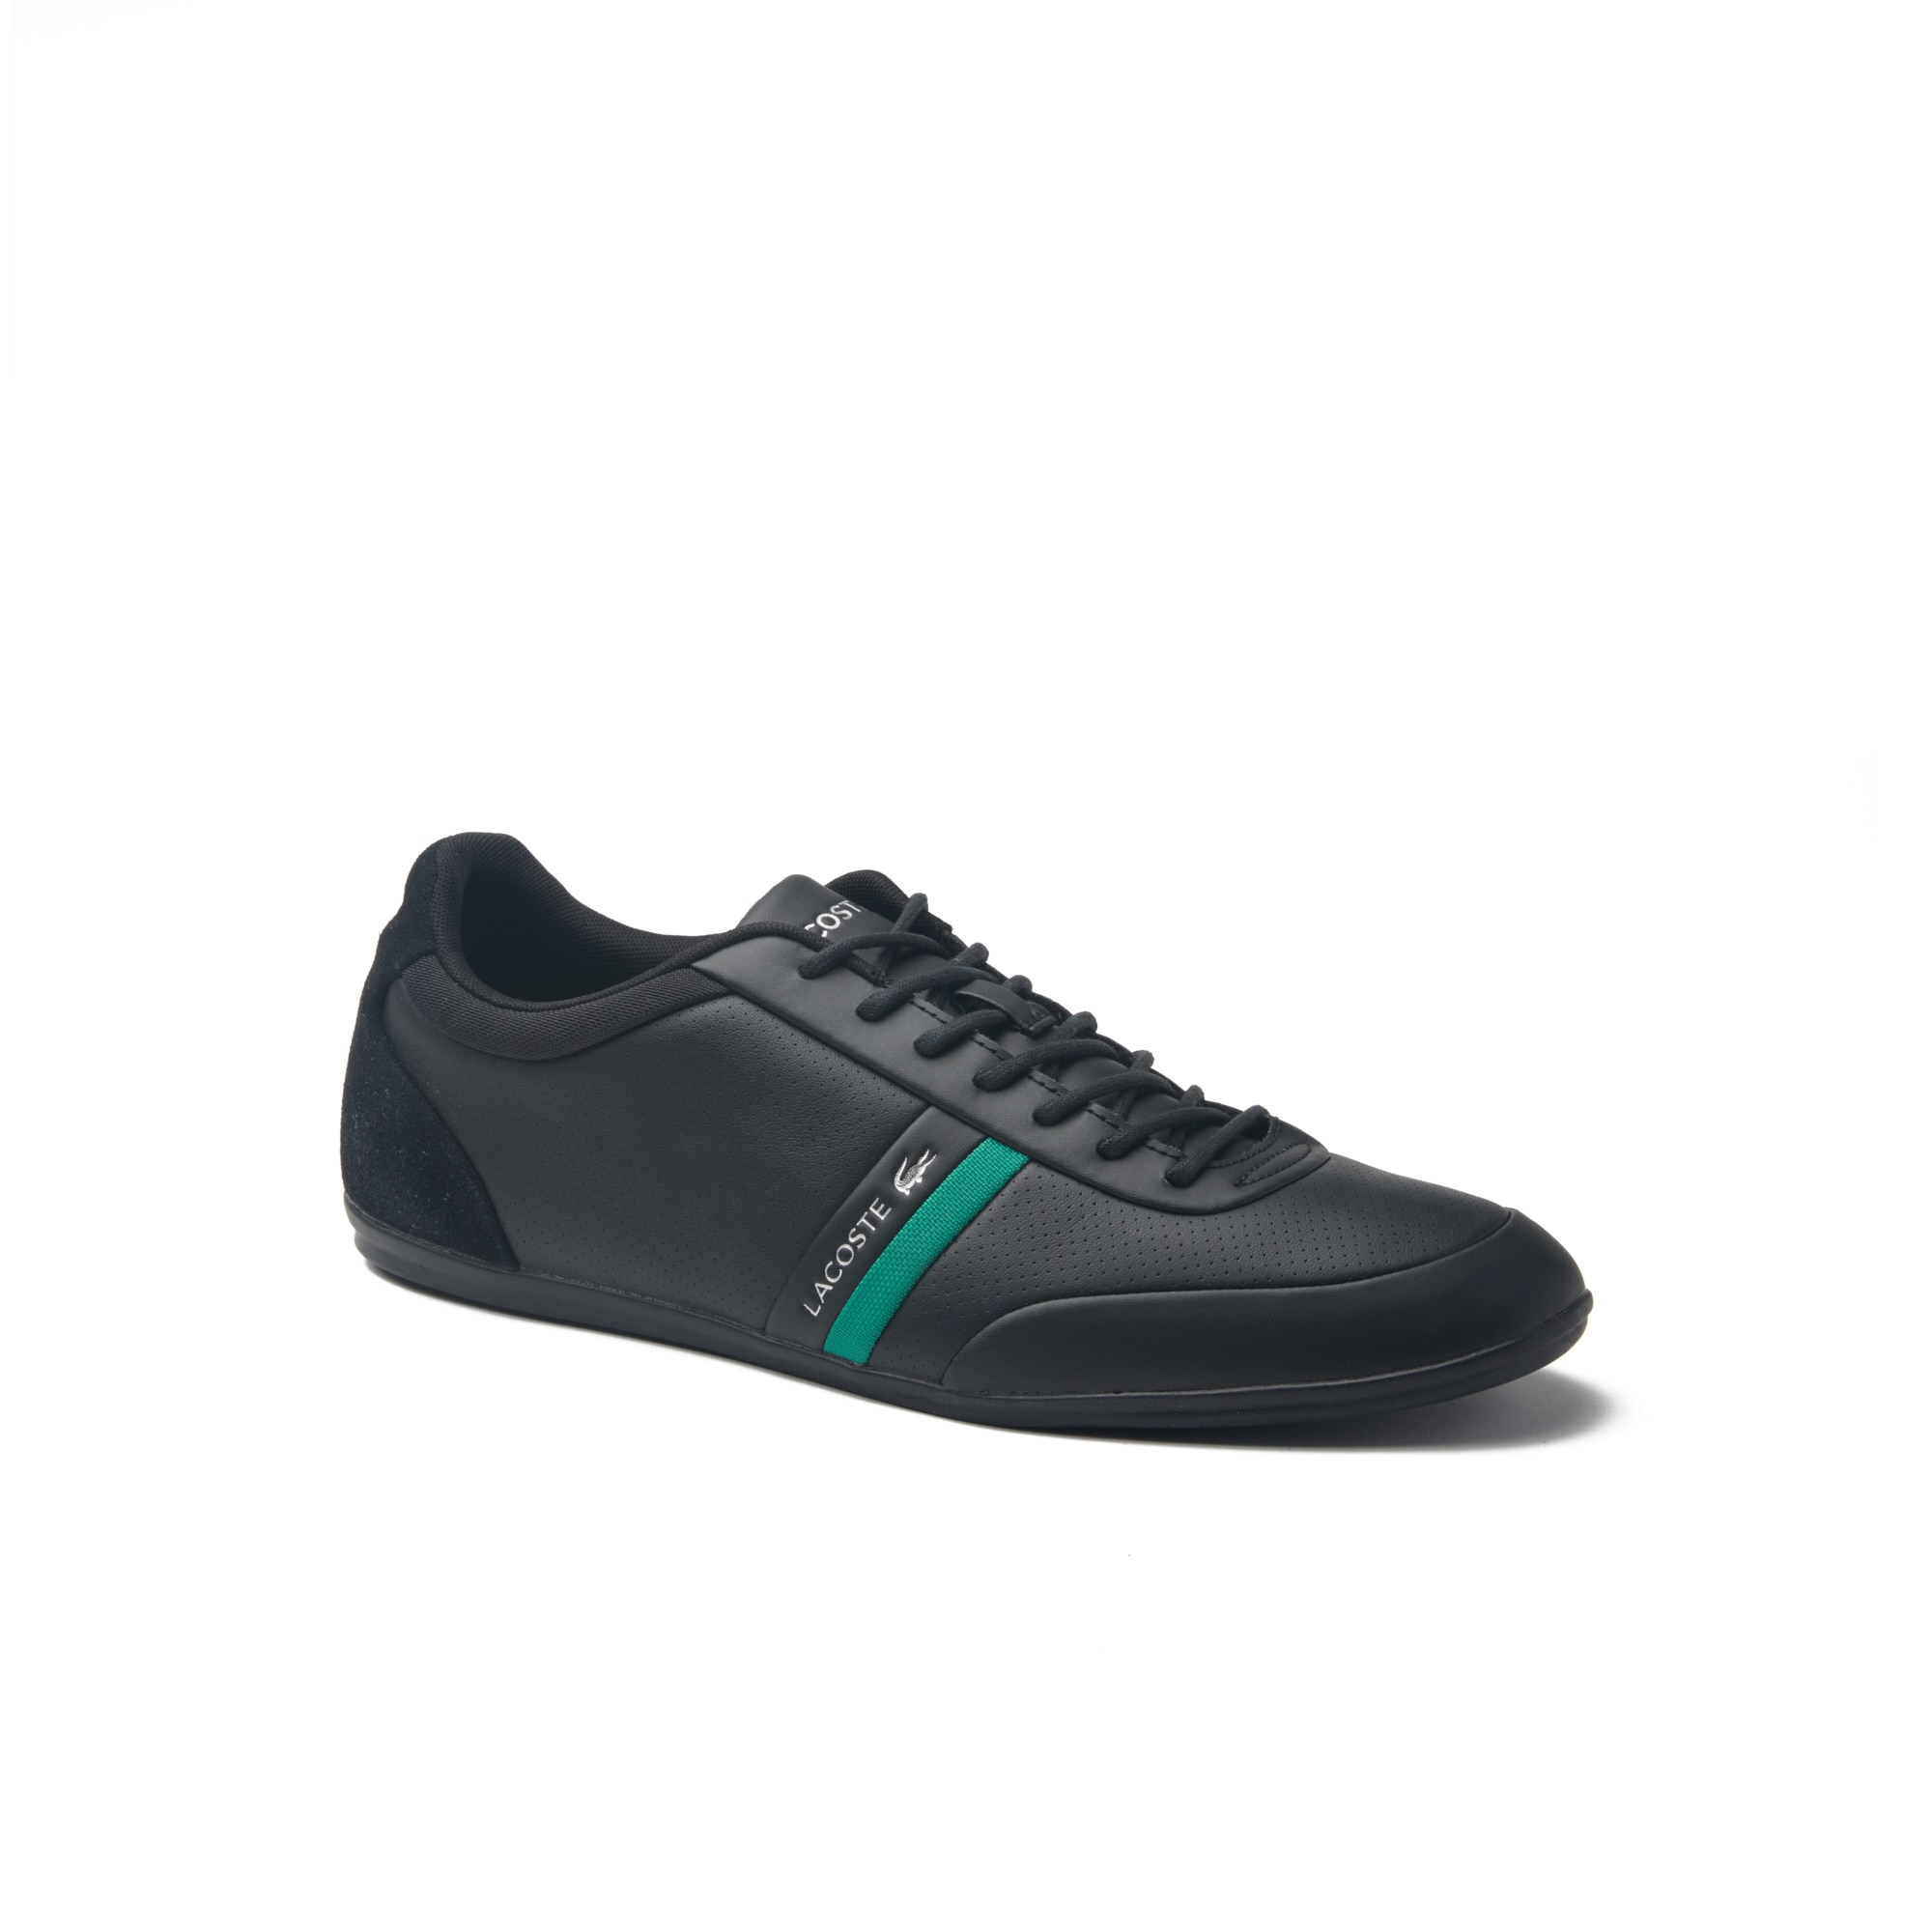 19f1a8dbfc06 Men s Shoes